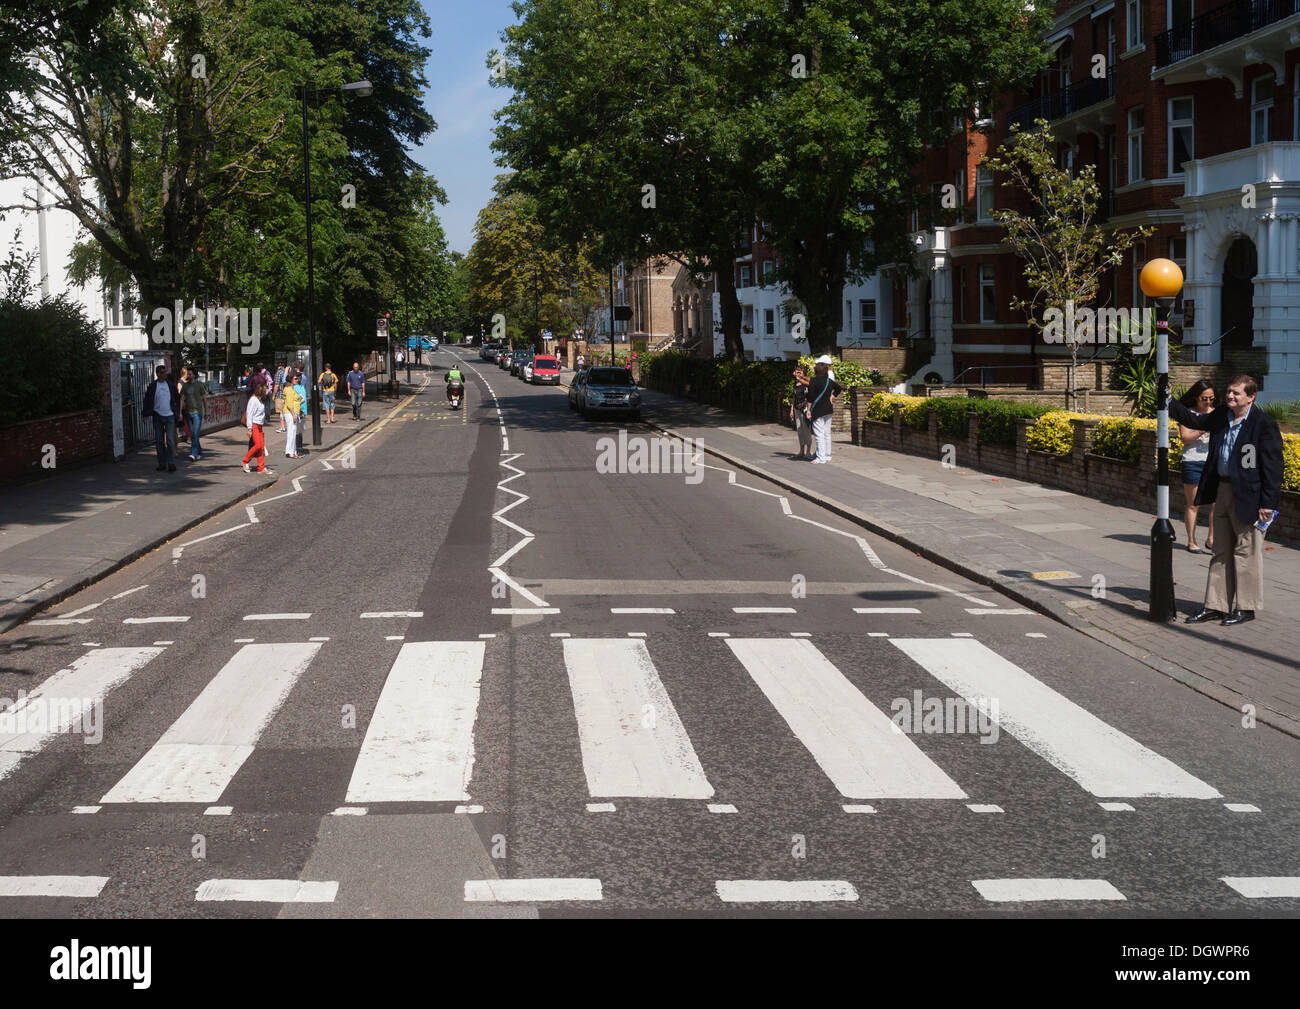 Zebra Crossing Of The Famous Beatles Album Cover Abbey Road London England United Kingdom Europe